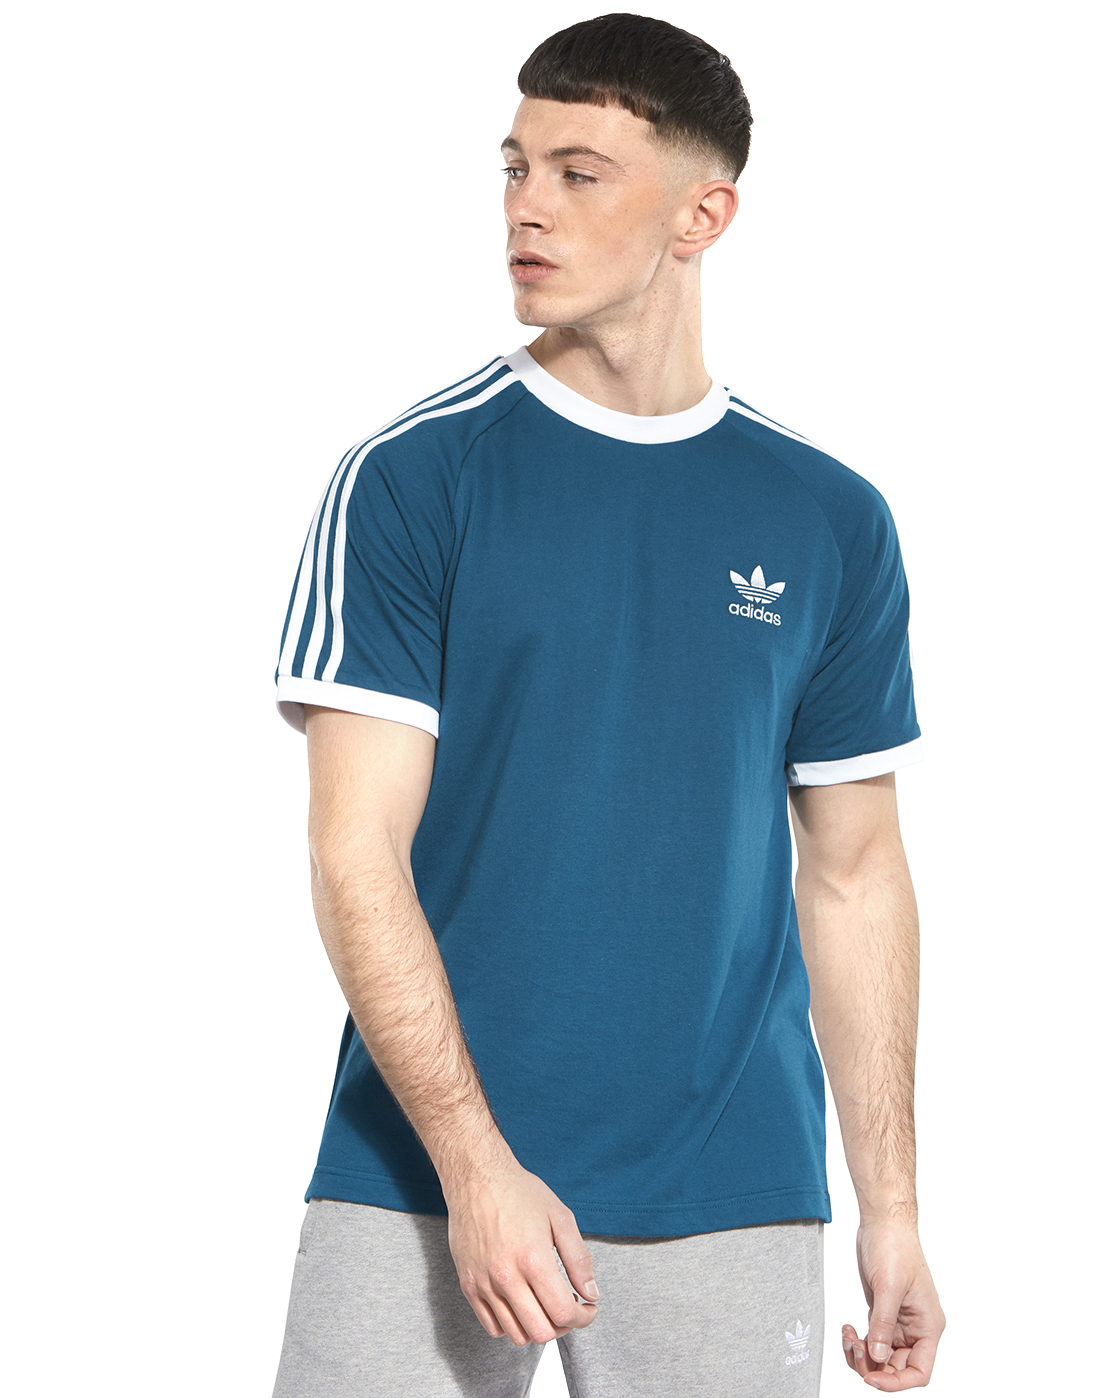 f3e47f5e202 Men's Blue adidas Originals T-Shirt | Life Style Sports